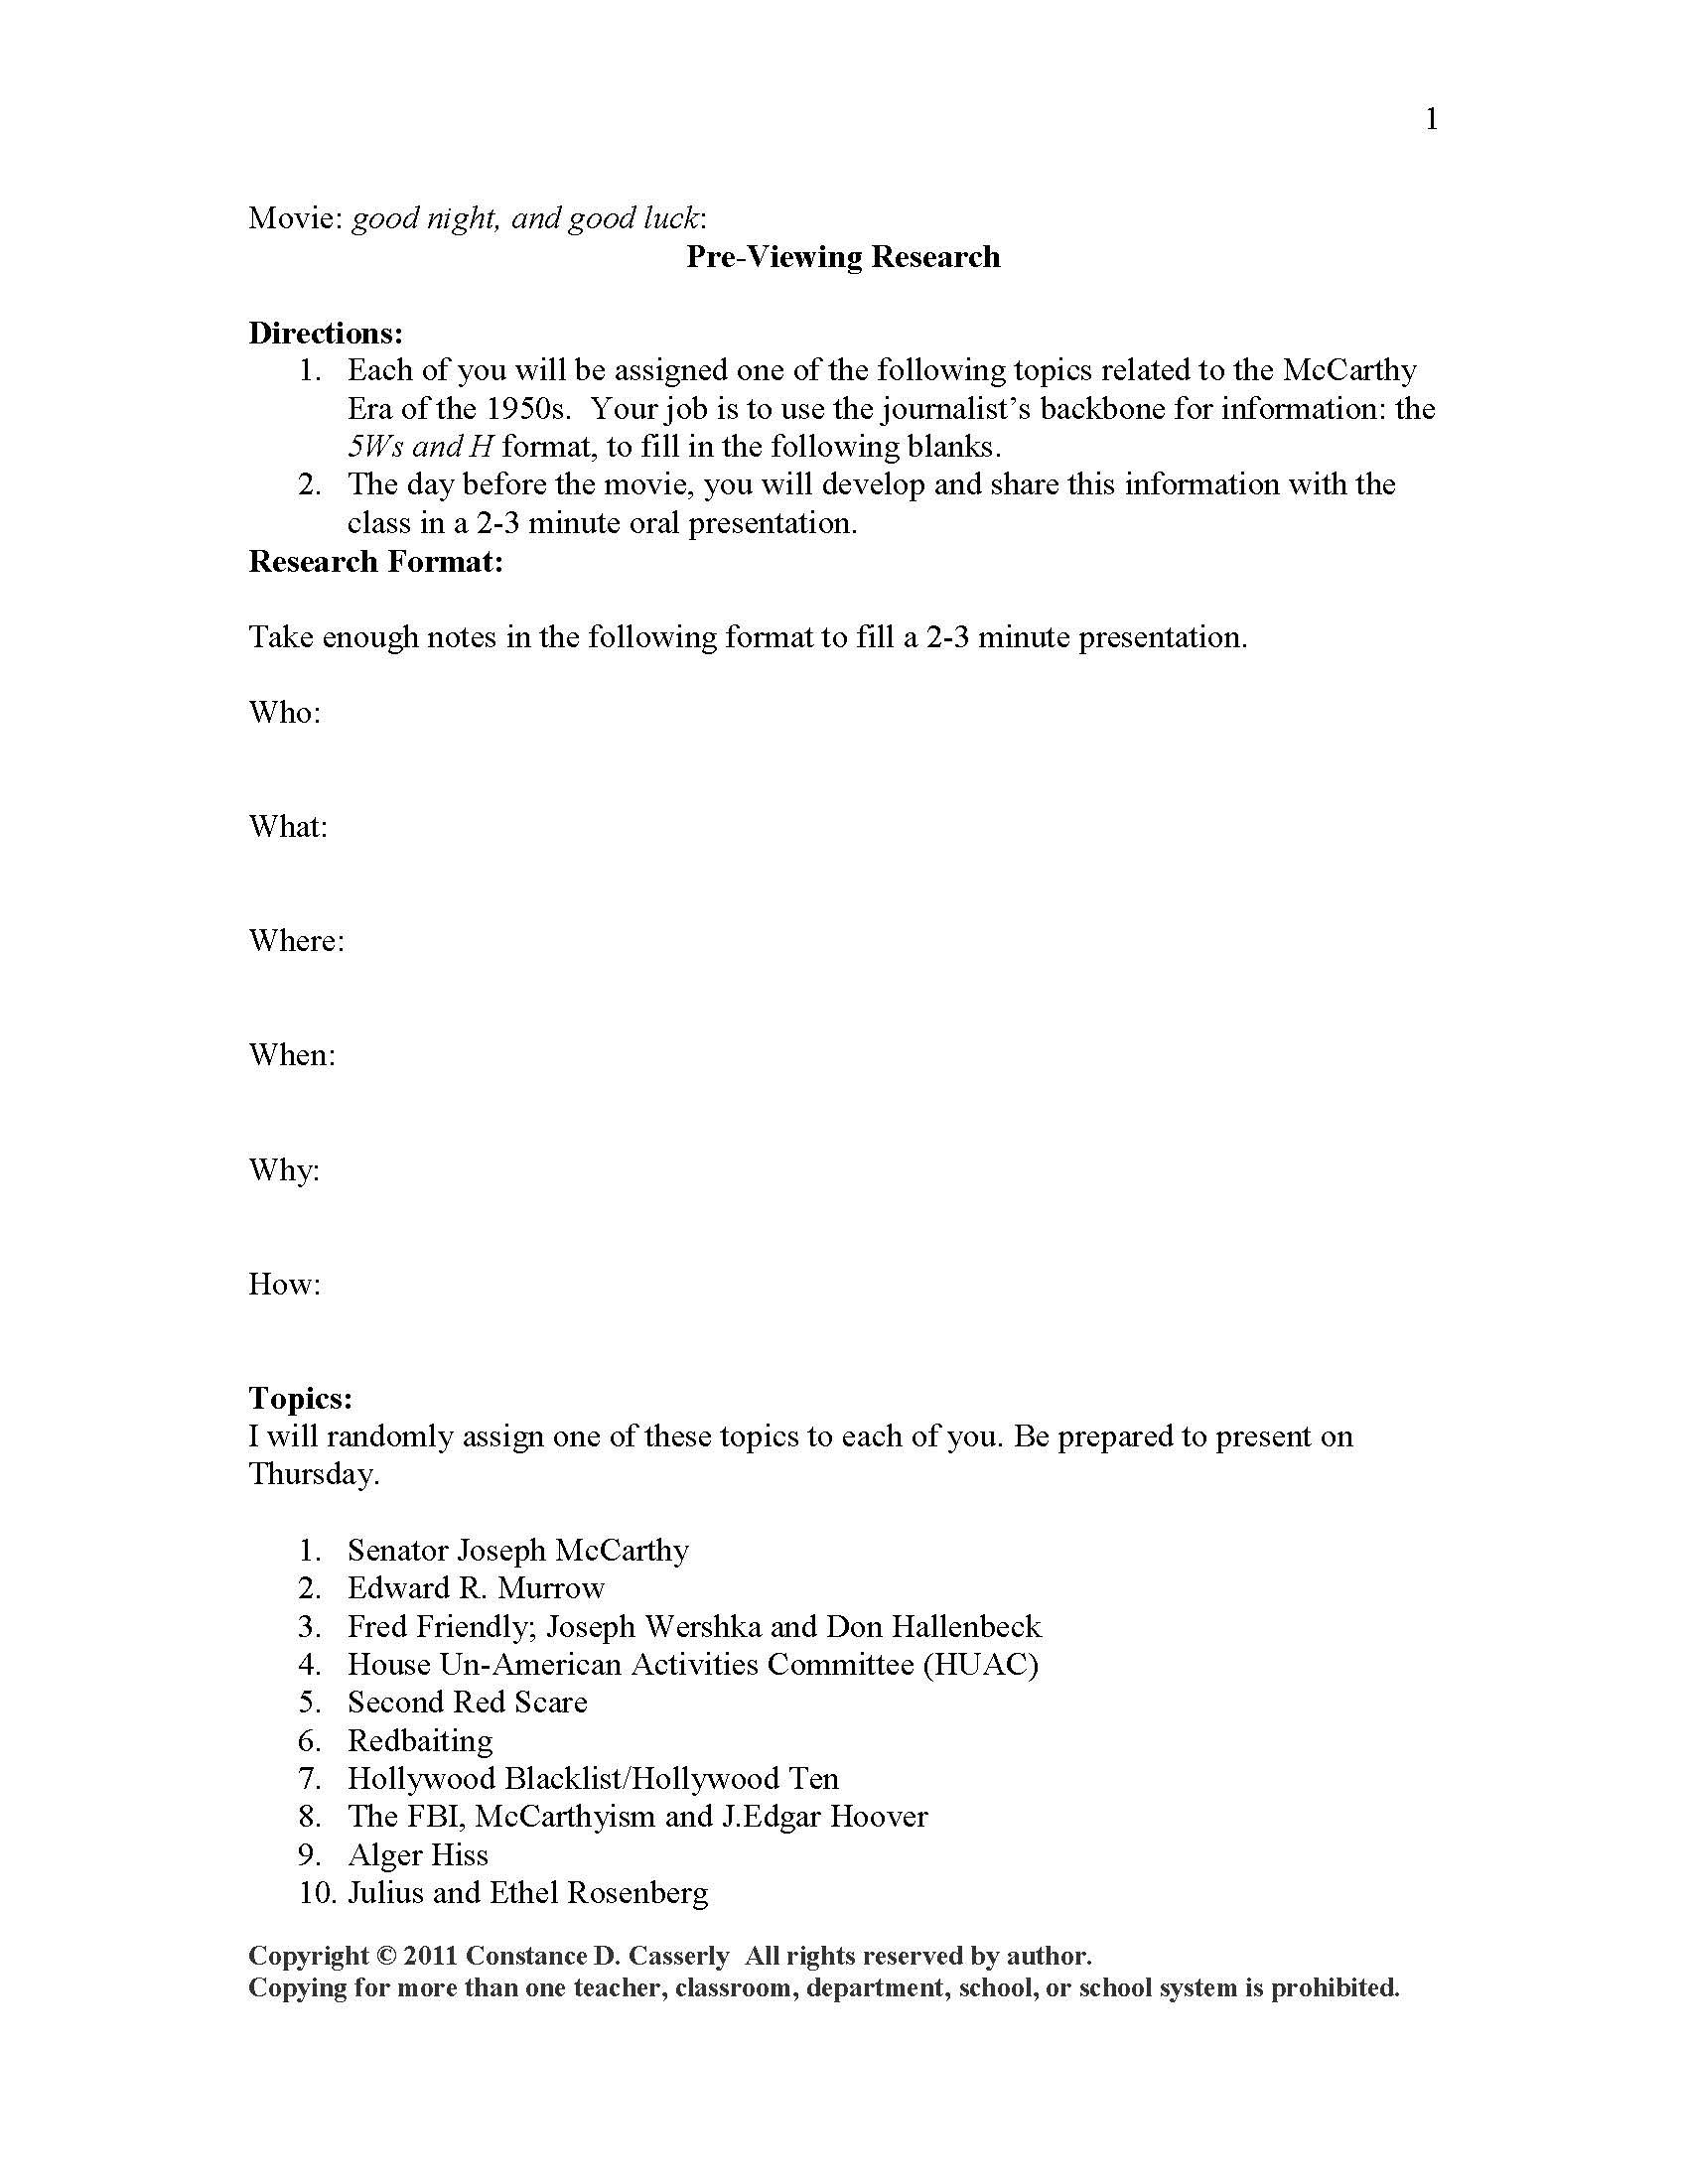 Worksheet For The Movie Good Night And Good Luck Click On The Journalism Tab In My Store